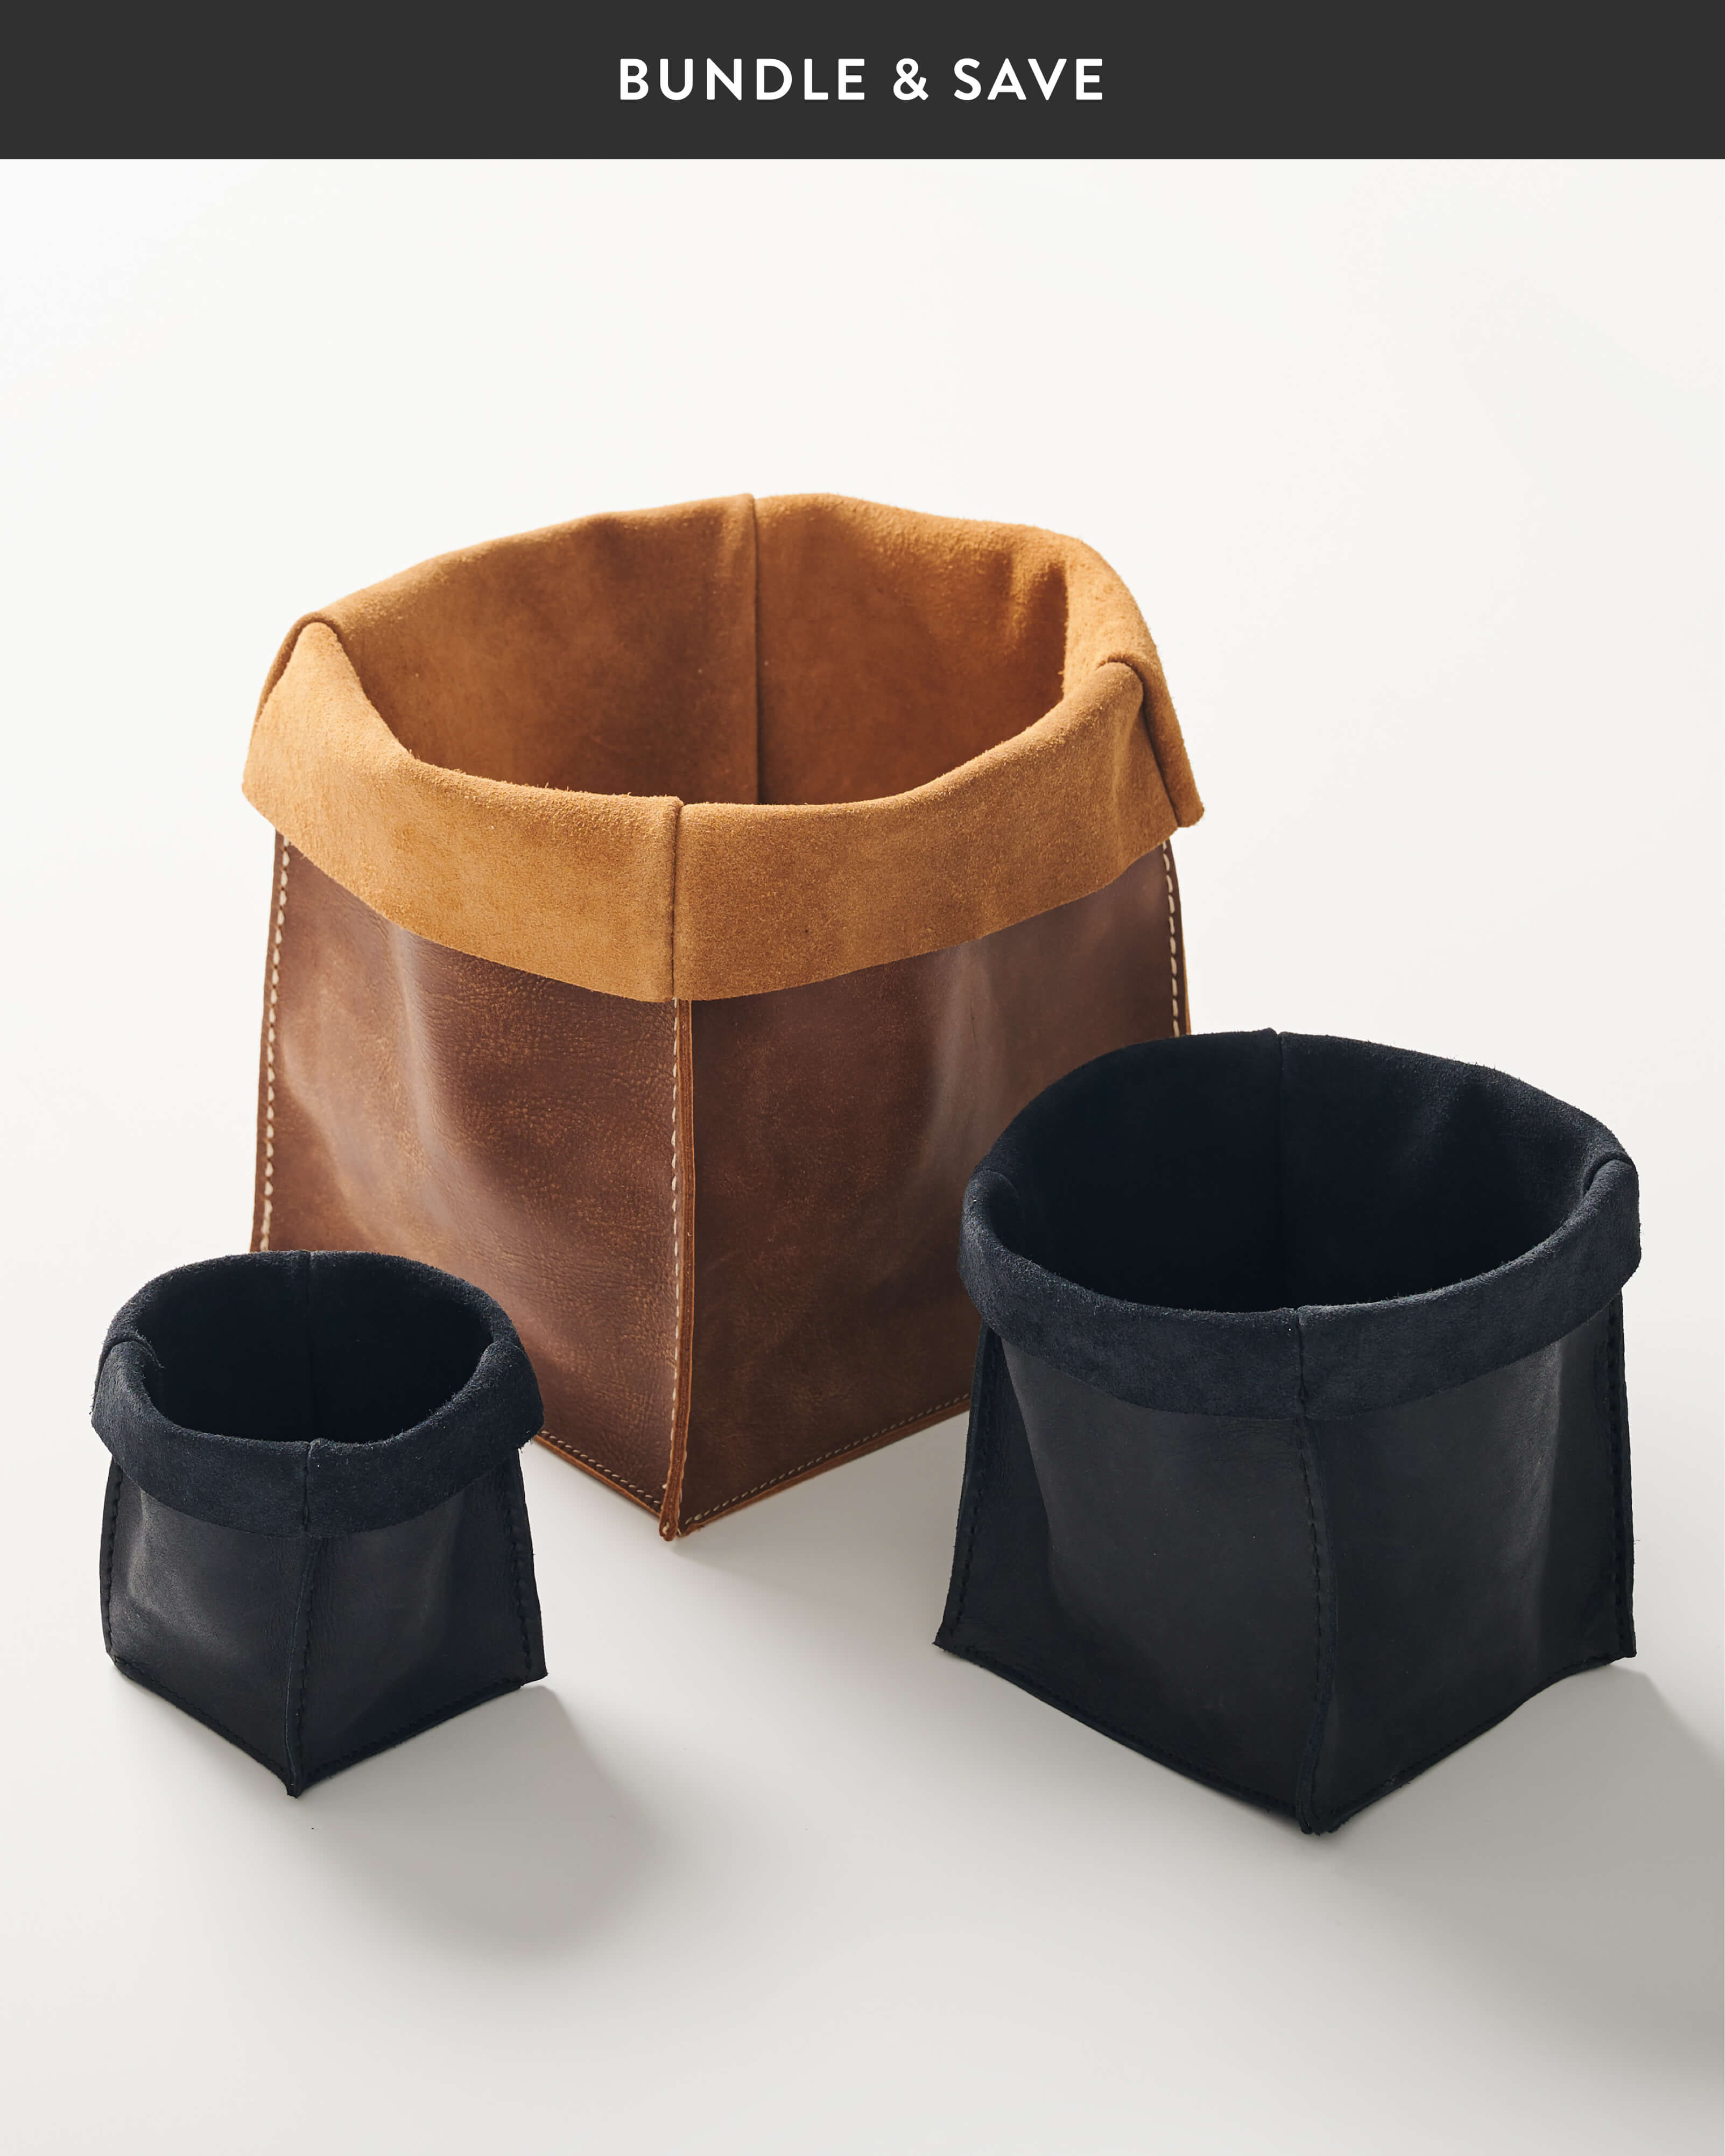 Roots-Leather Leather Accessories-Shop The Look: Home Accessories Bundle -3